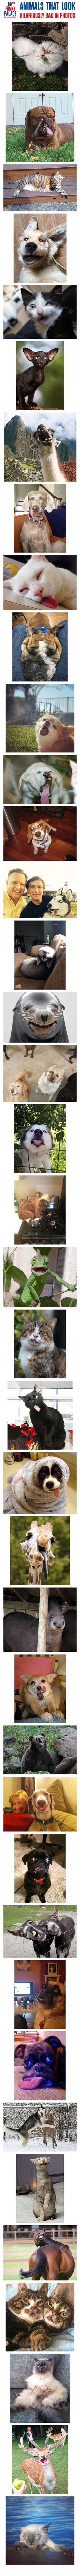 Animals That Look Hilariously Bad In Photos - MyFunnyPalace